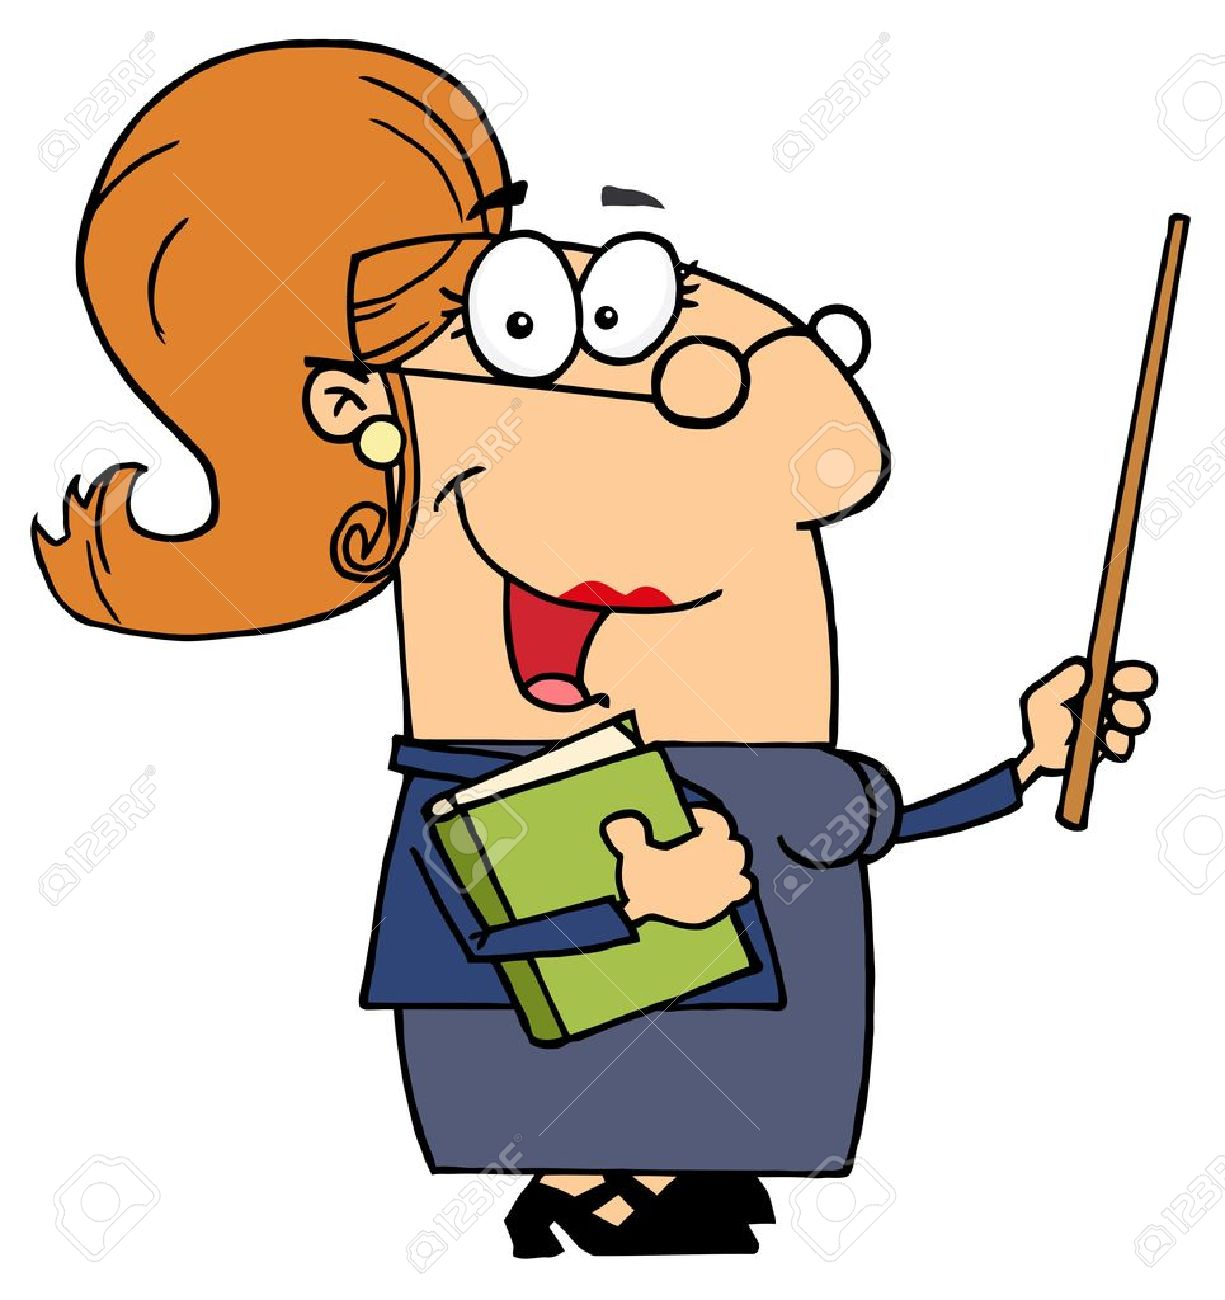 Female professor clipart.